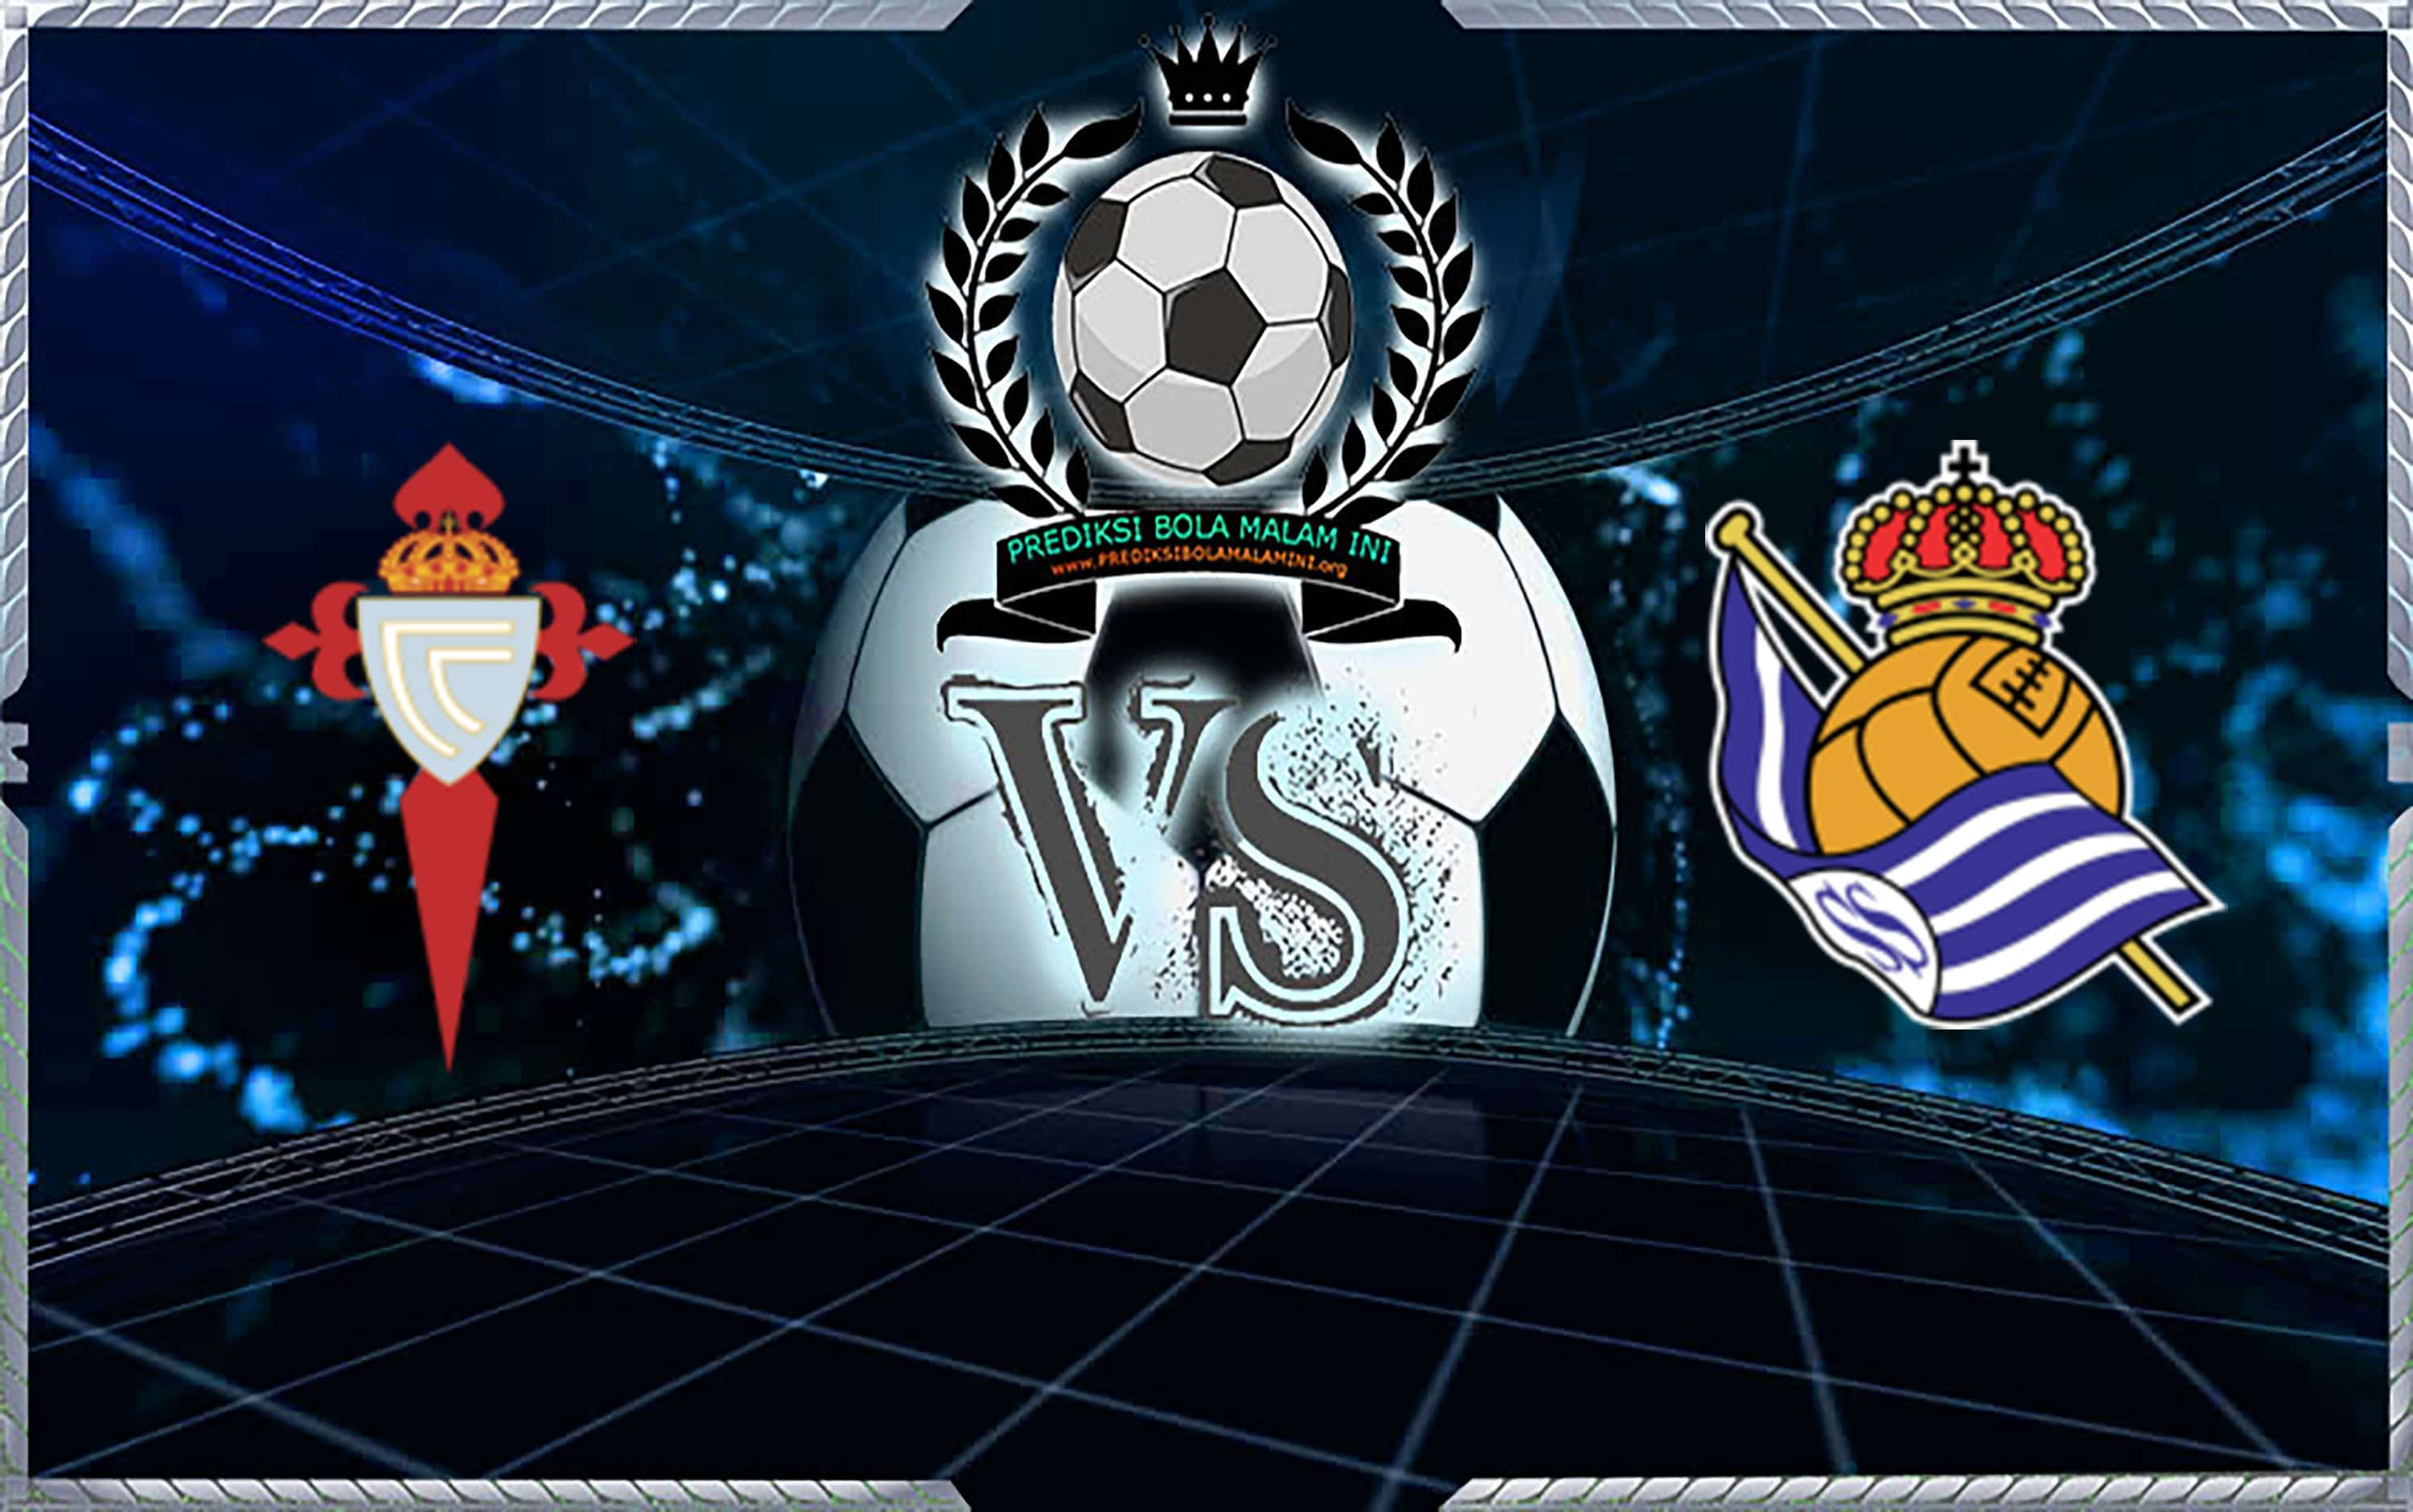 "Prediksi Skor Celta de vigo Vs Real sociedad 7 April 2019 ""width ="" 640 ""height ="" 401 ""/> </p> <p> <span style="